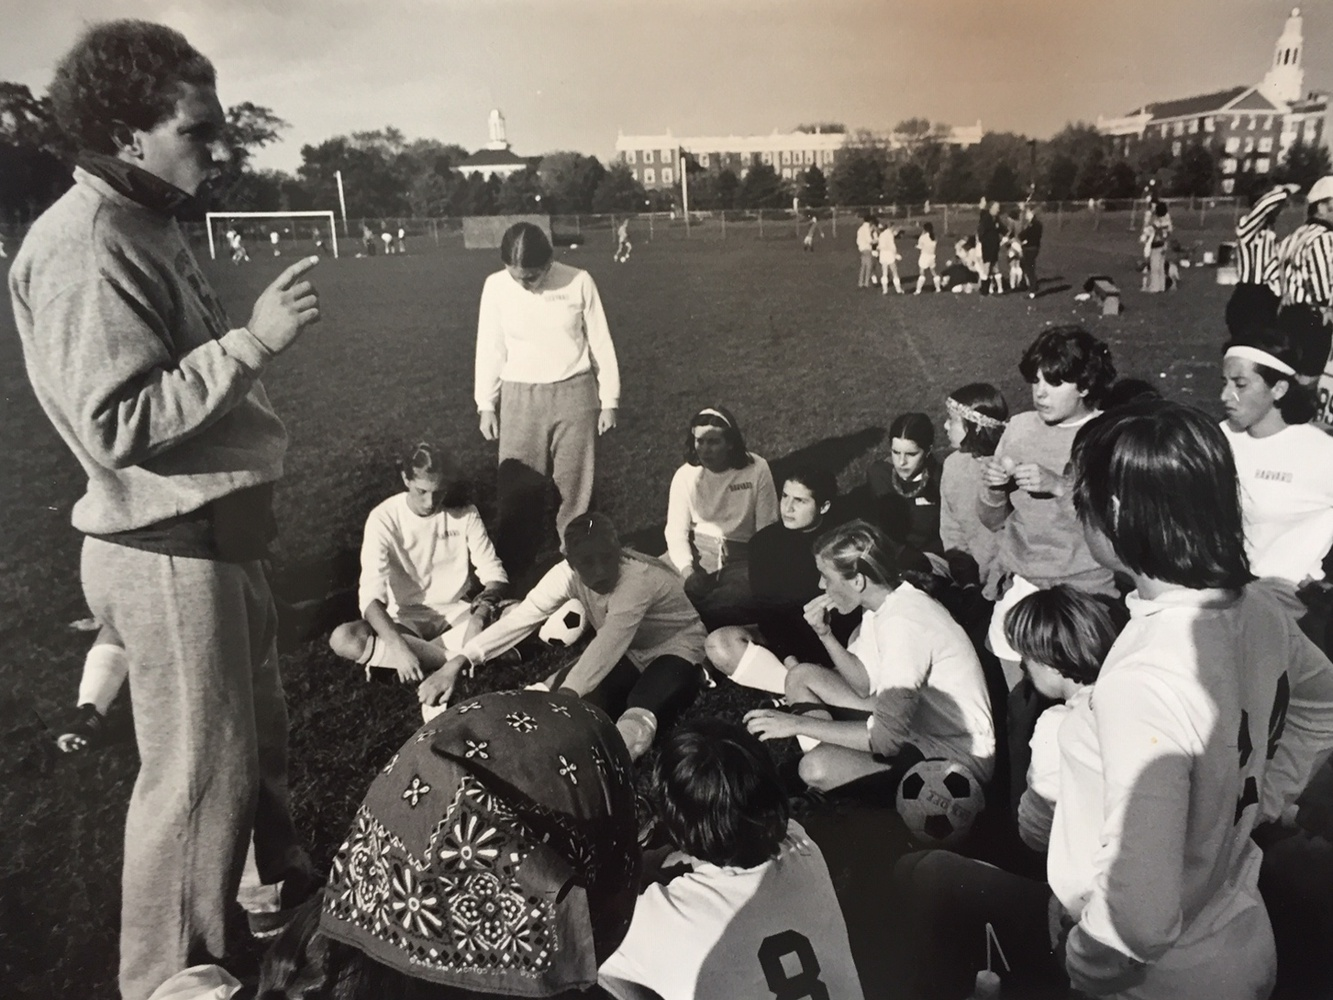 In 1977, Robert L. Scalise was the first coach of the women's varsity soccer program at Harvard , staying with the team until 1987.